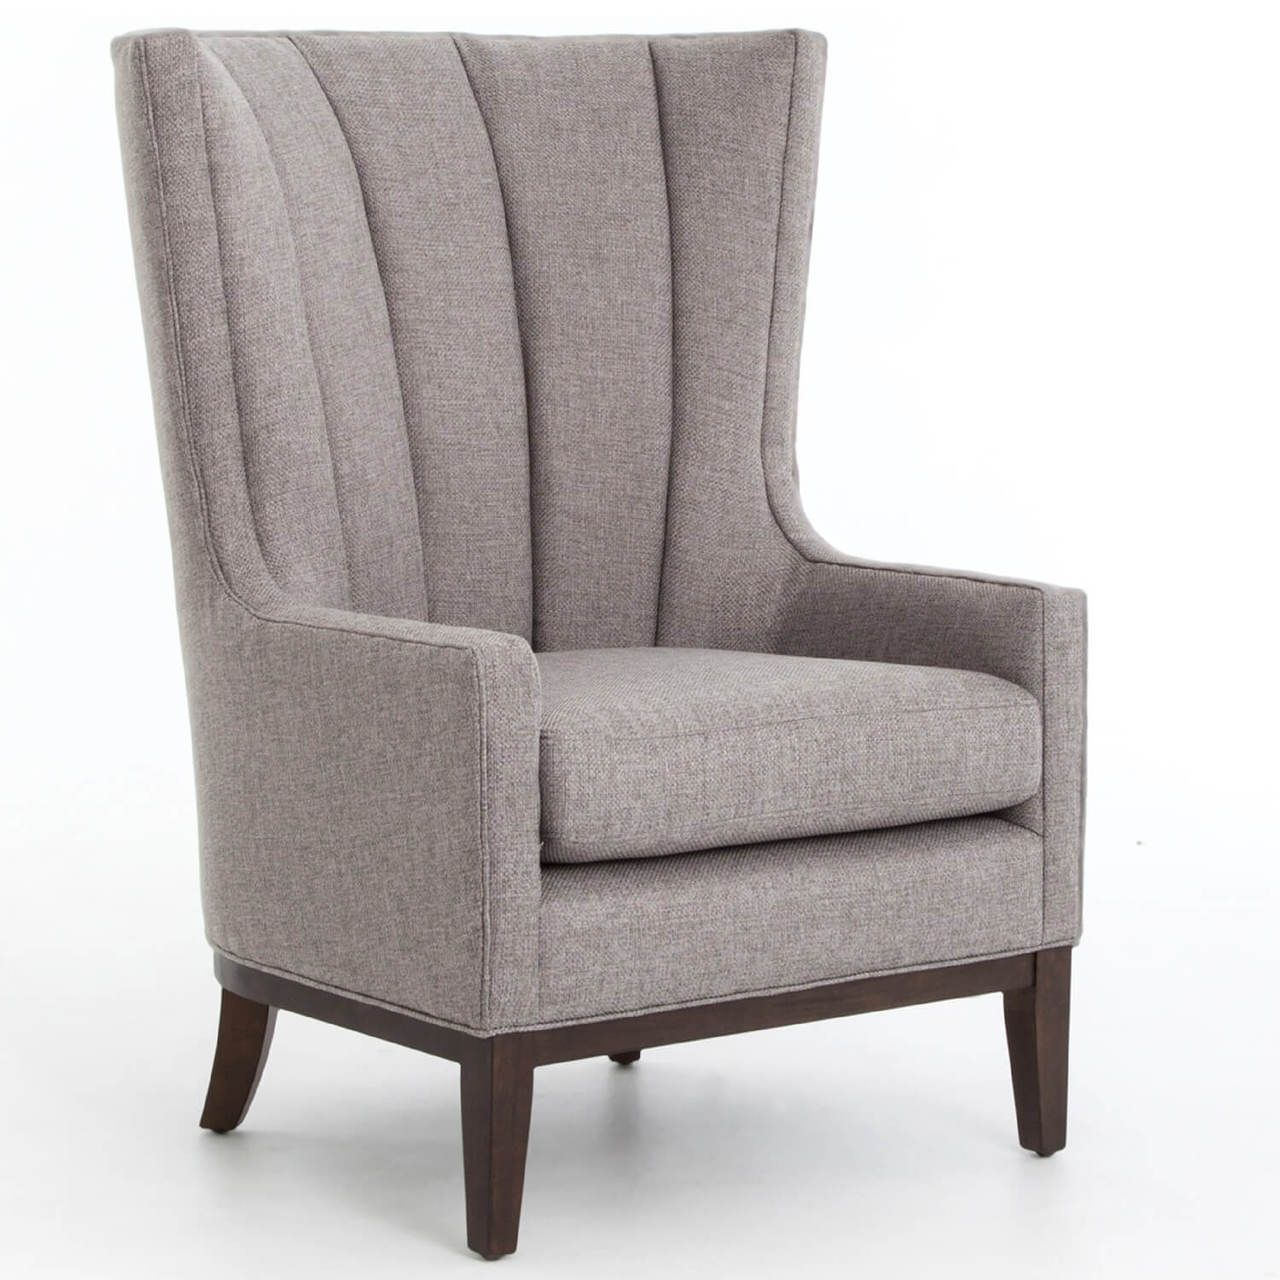 Channeled linen upholstered wing chair as seen on hgtv fixer upper a stately retreat in woodway texas